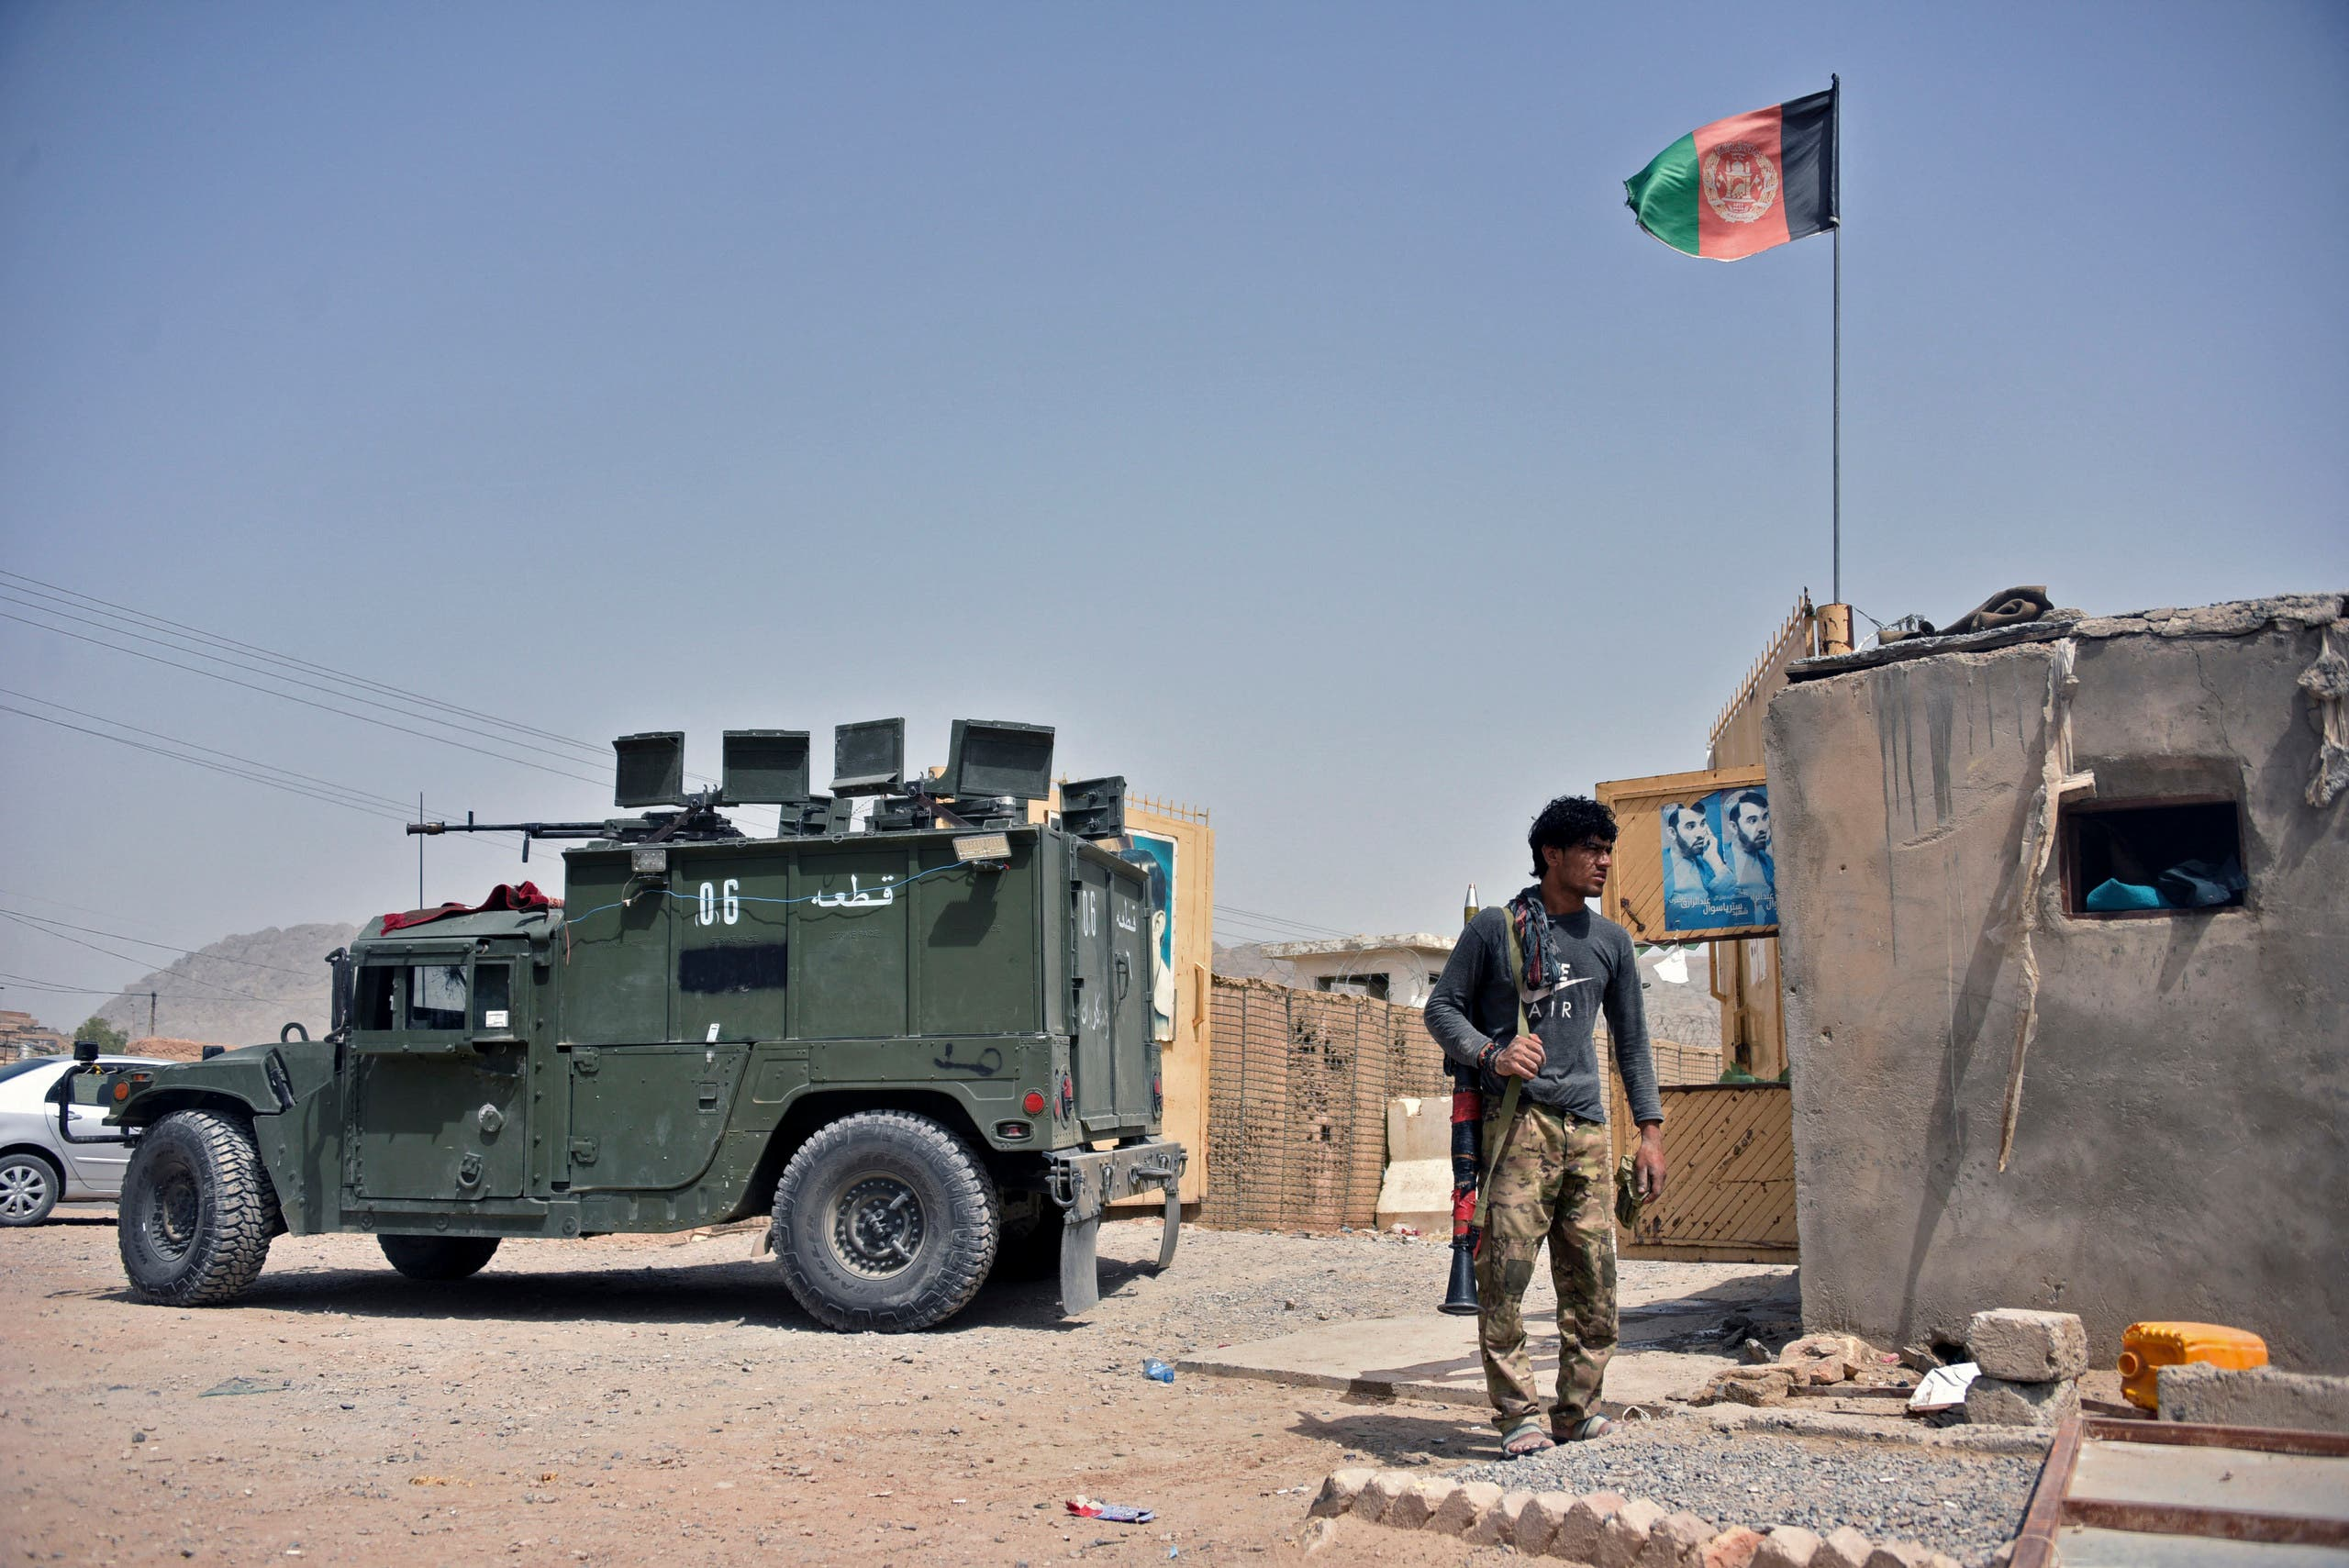 Afghan forces at the site of a car bomb explosion in Kandahar (archive)